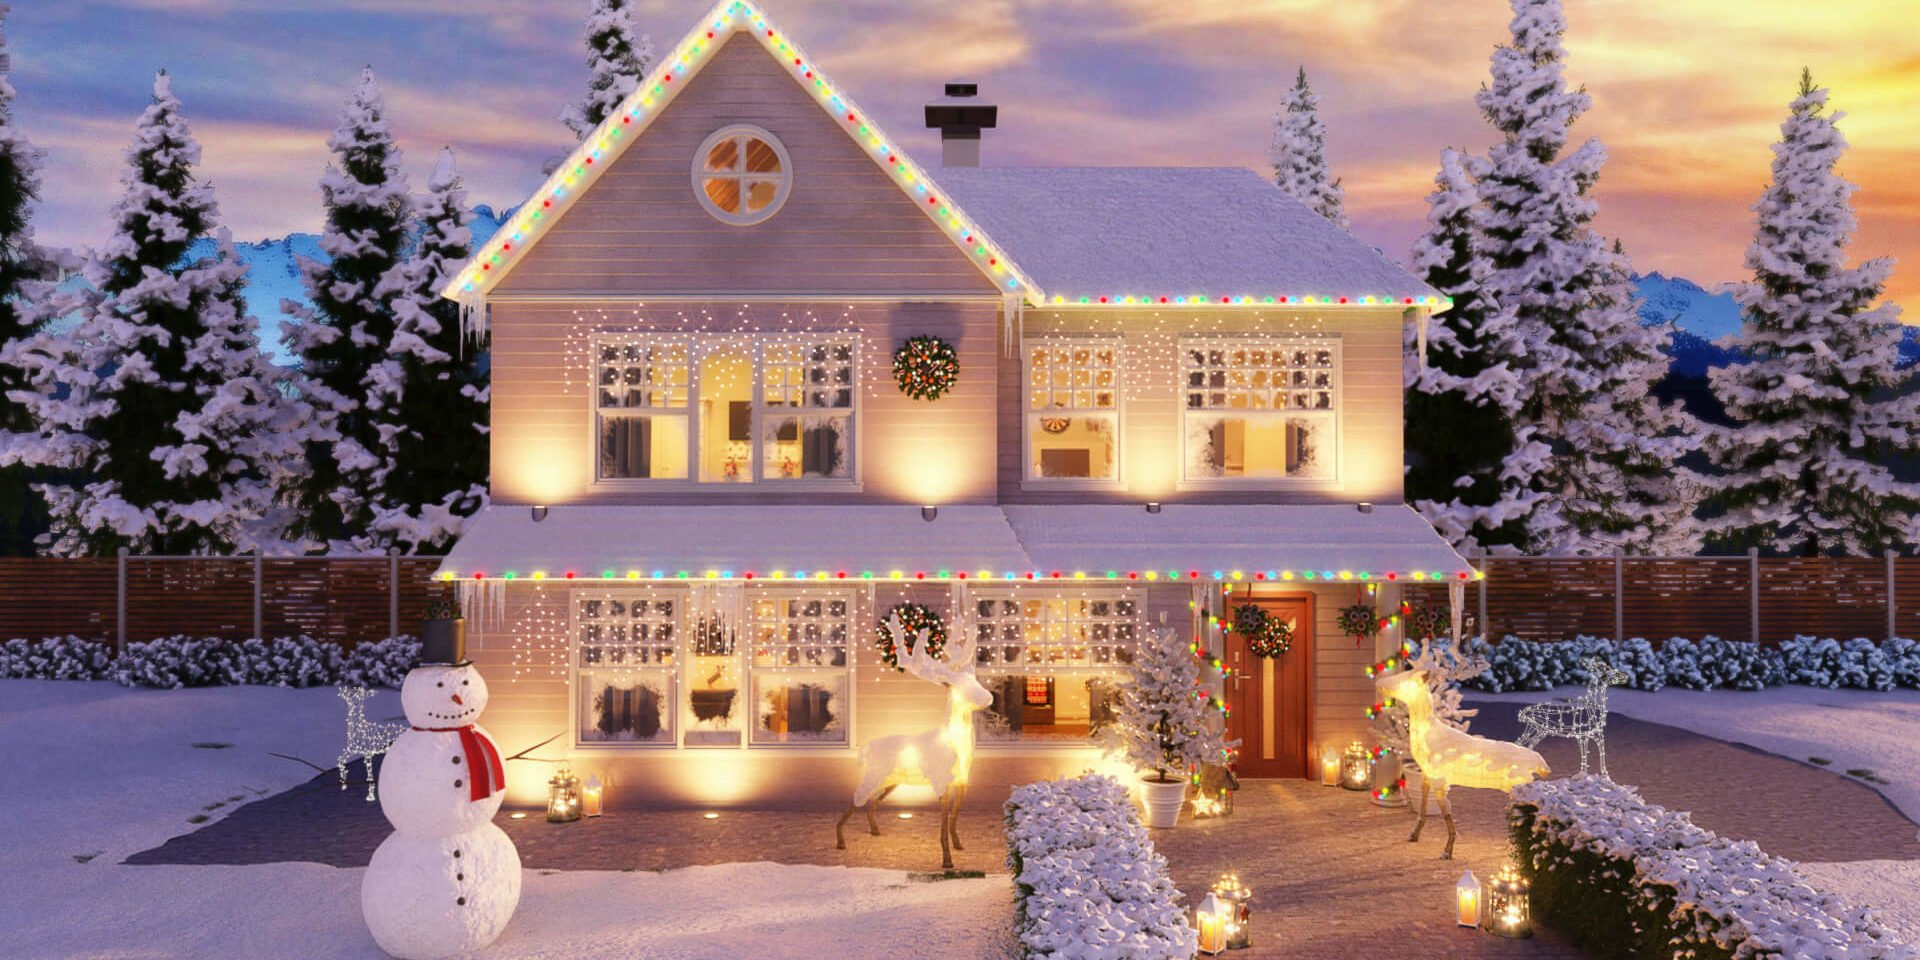 Pentatonix Christmas House